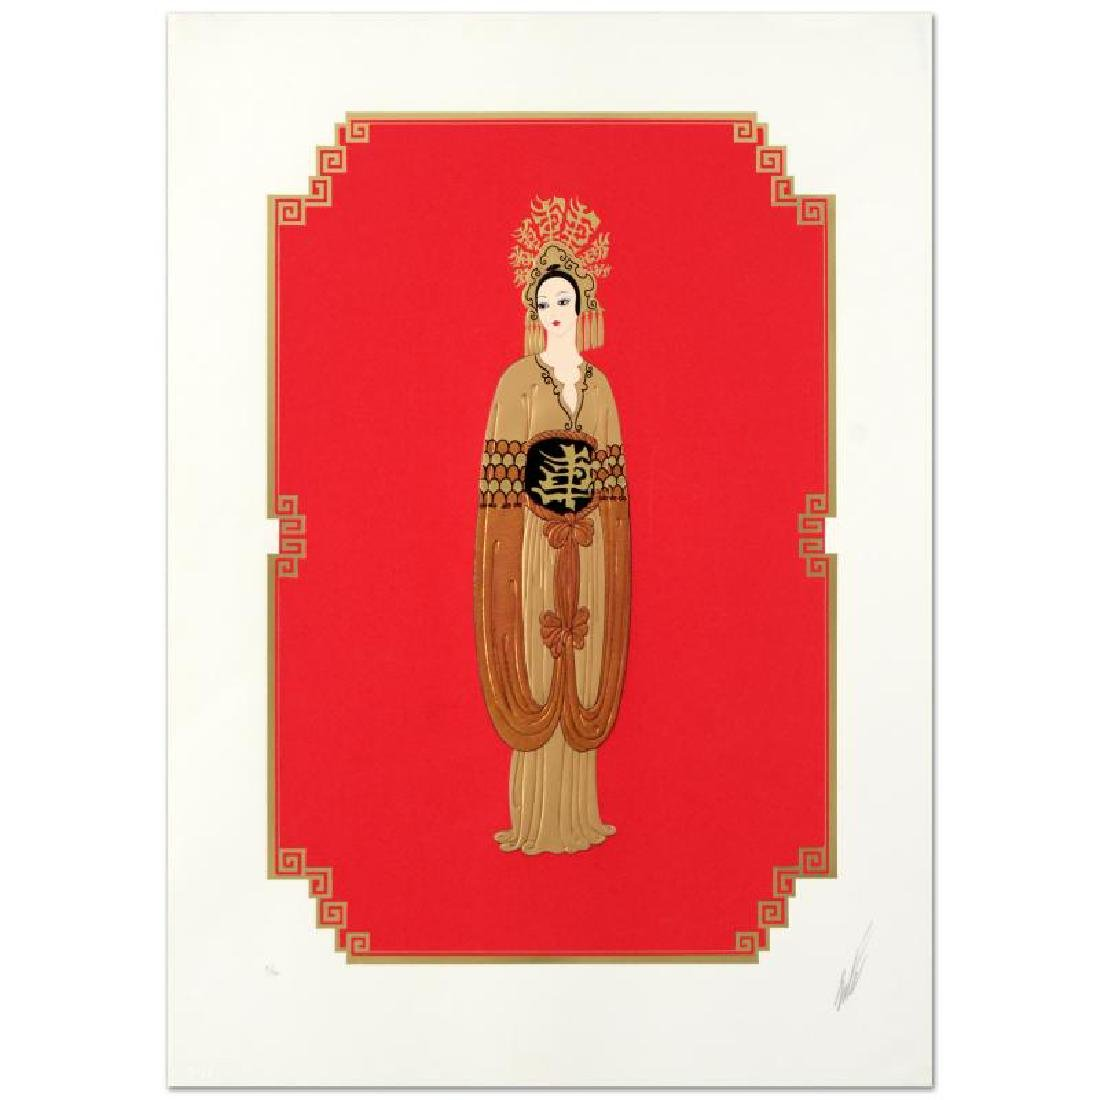 "Erte (1892-1990) ""Plum Blossom"" Limited Edition"